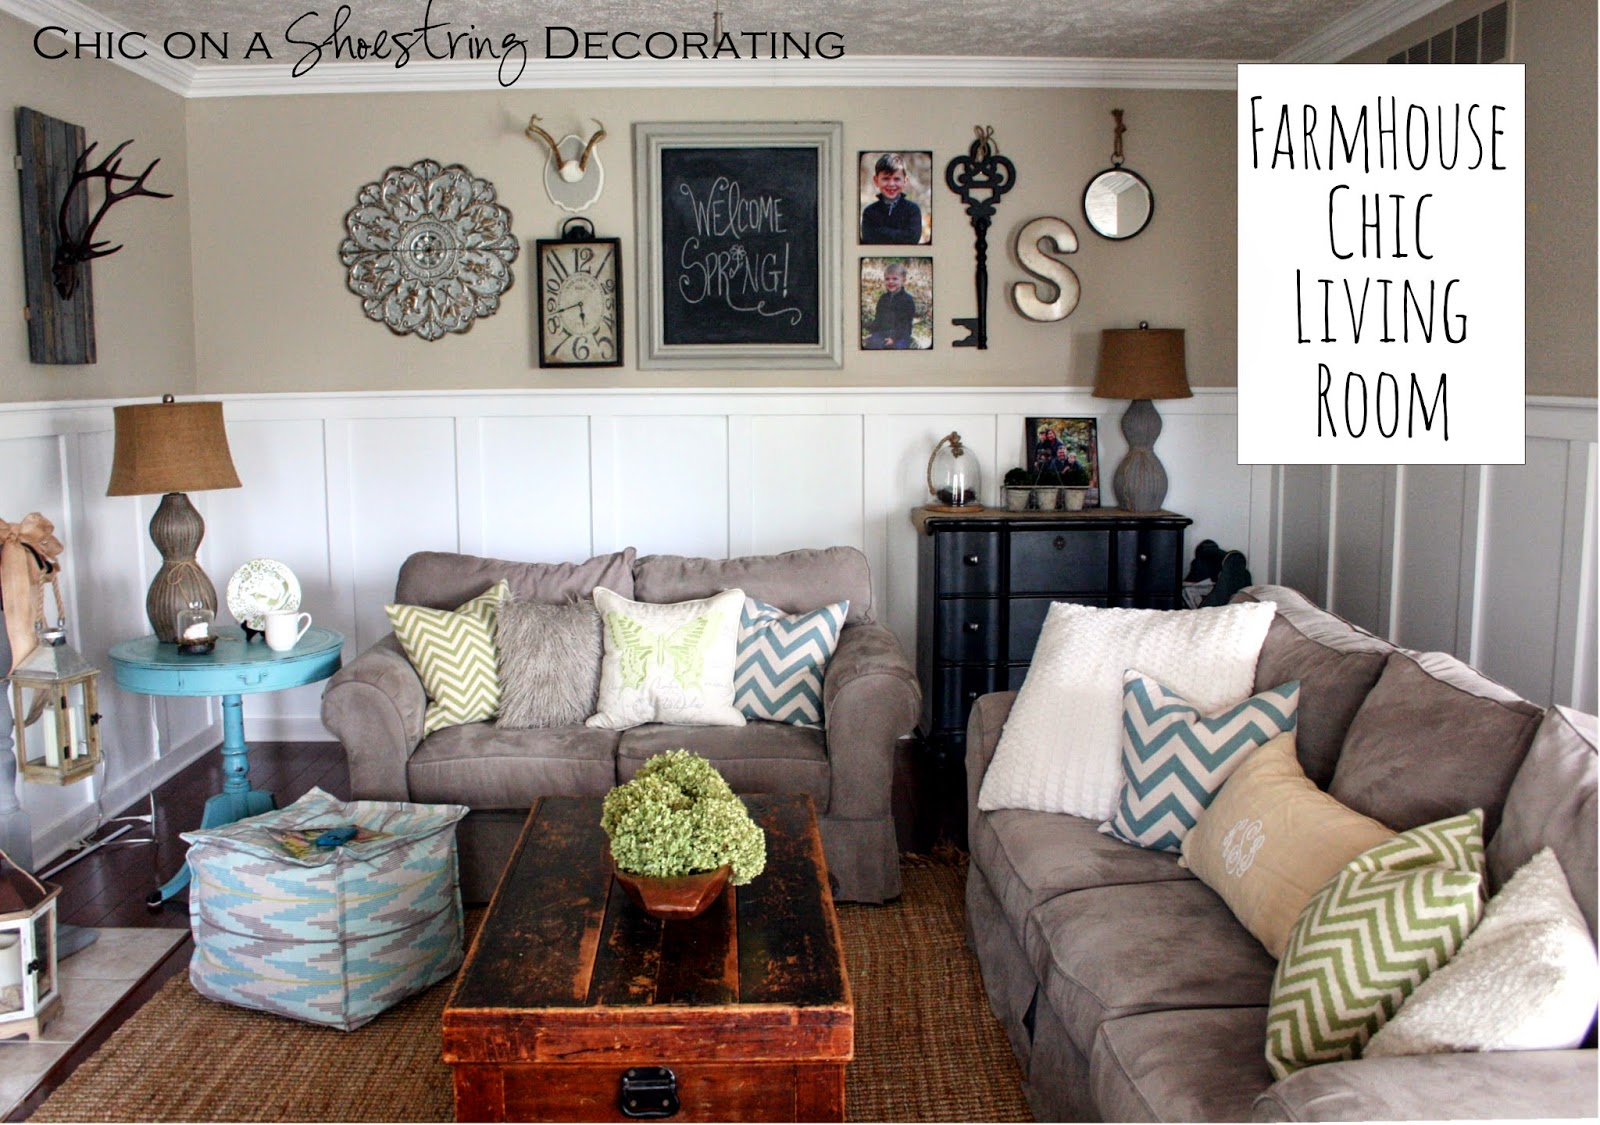 Farmhouse Chic Decor On A Shoestring Decorating Blog